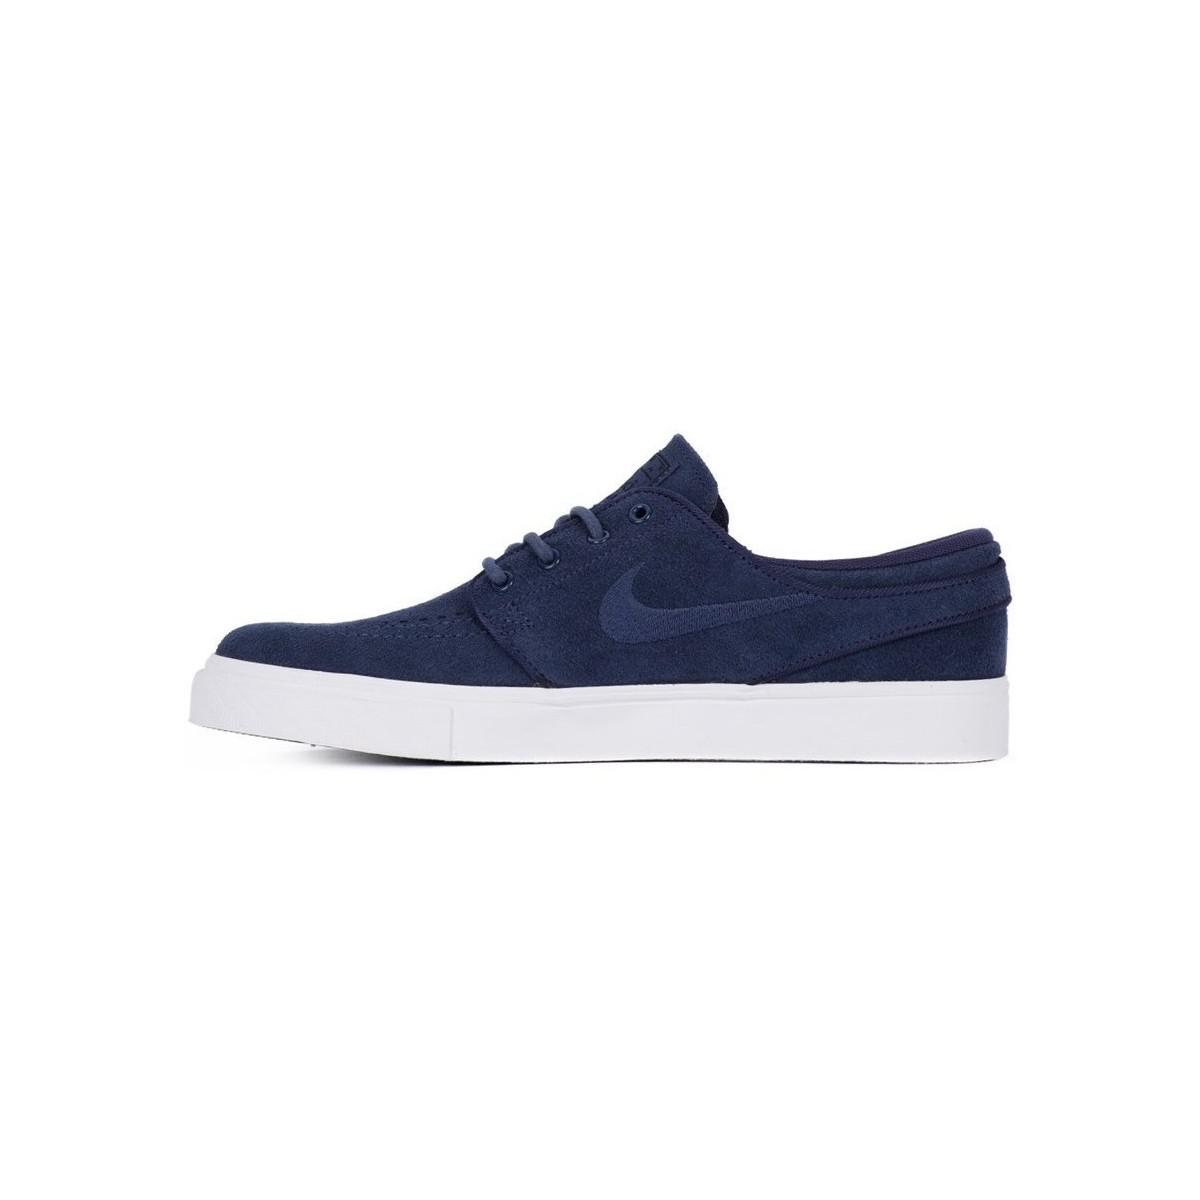 Nike Stefan Janoski Gs Women's Shoes (trainers) In Multicolour in Blue